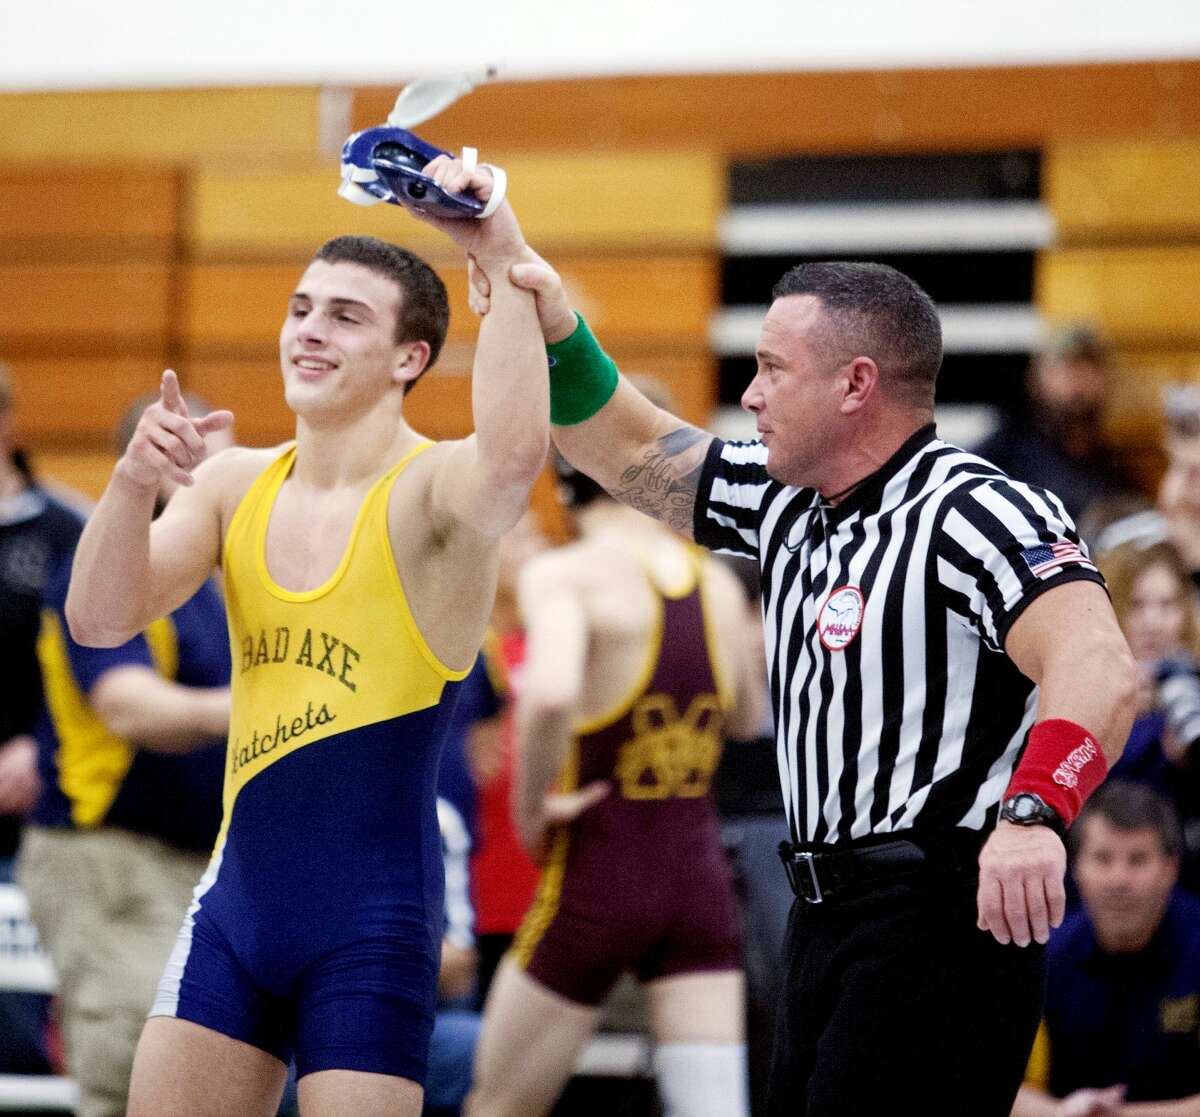 Bad Axe's Ryan Wehner showed plenty of character, with his third place finish at the state finals.